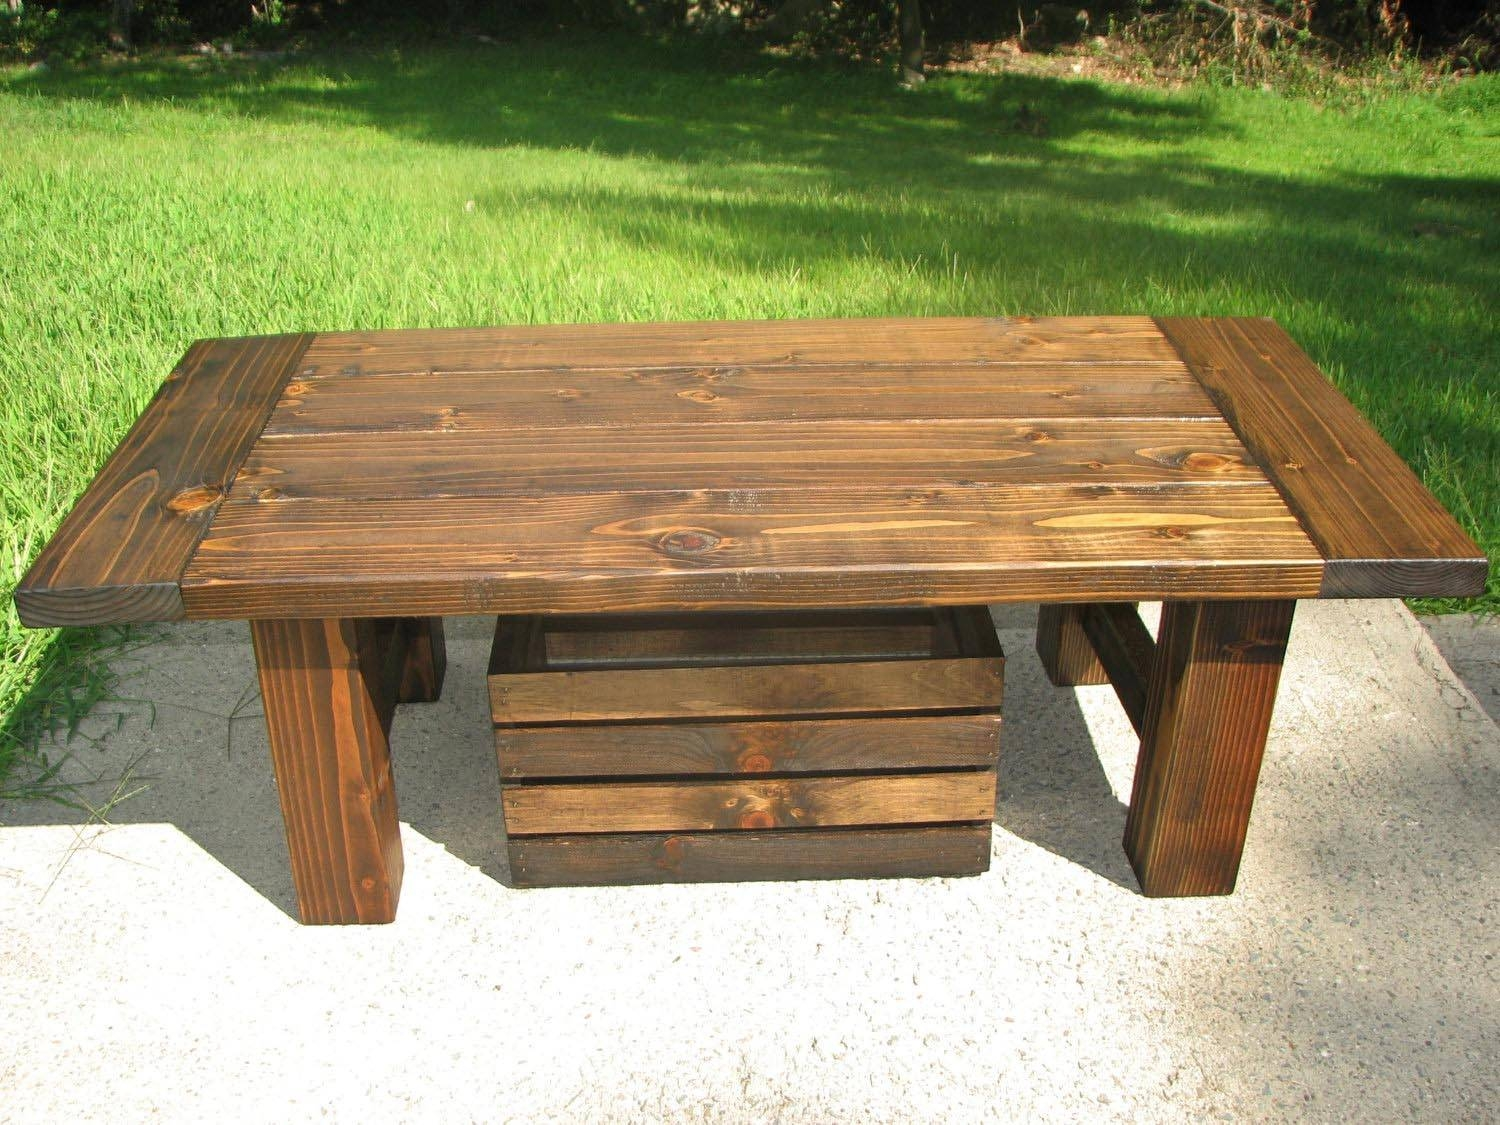 Pine Square Coffee Table | Coffee Table Design Ideas in Square Pine Coffee Tables (Image 22 of 30)